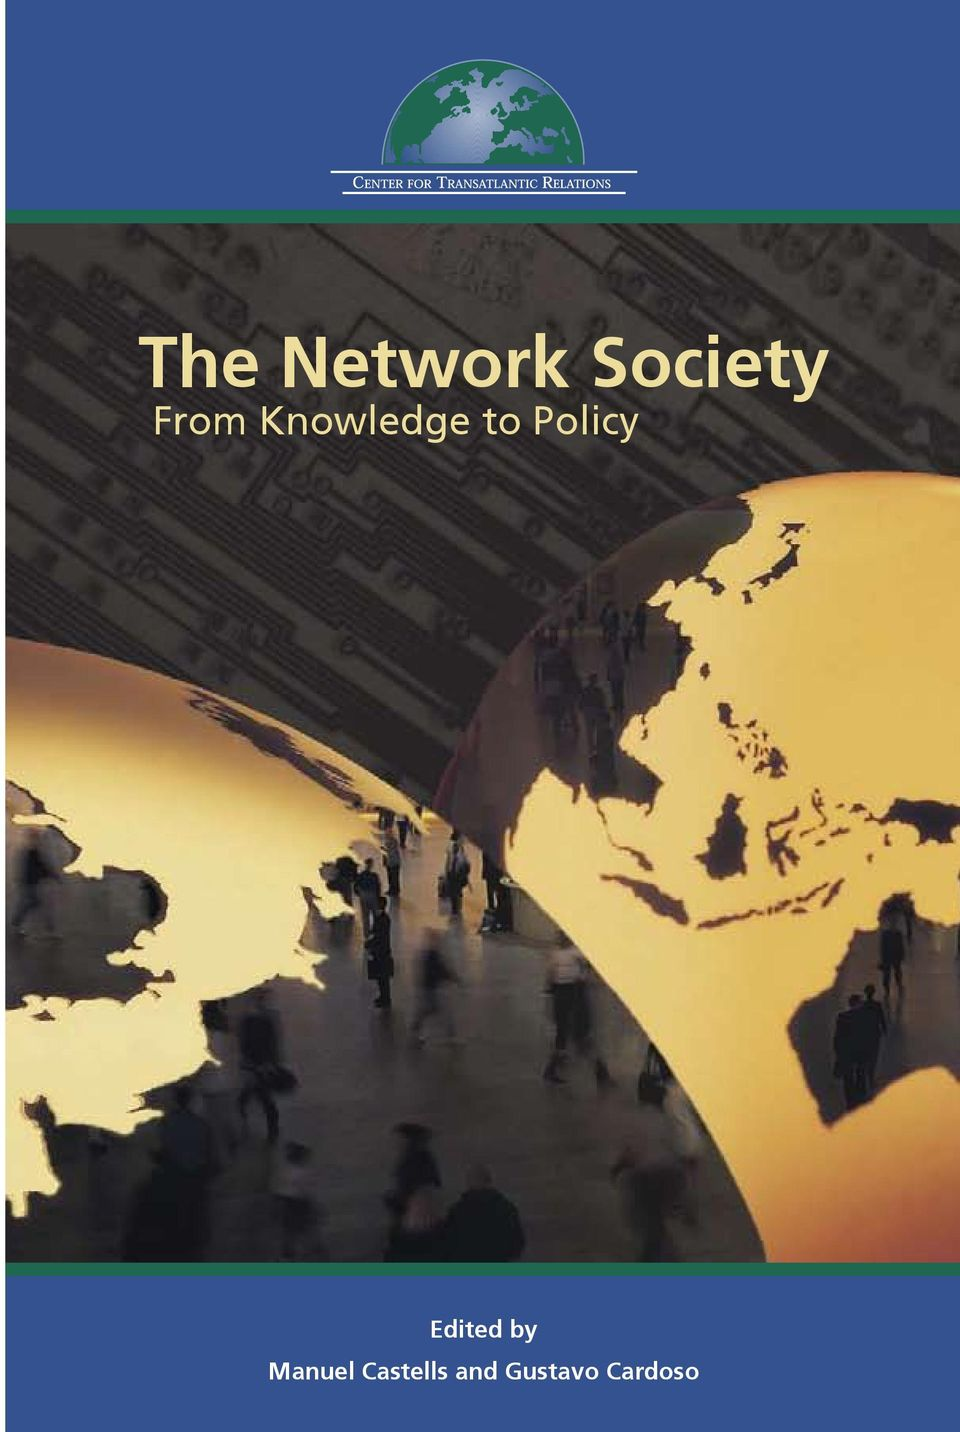 Policy Edited by